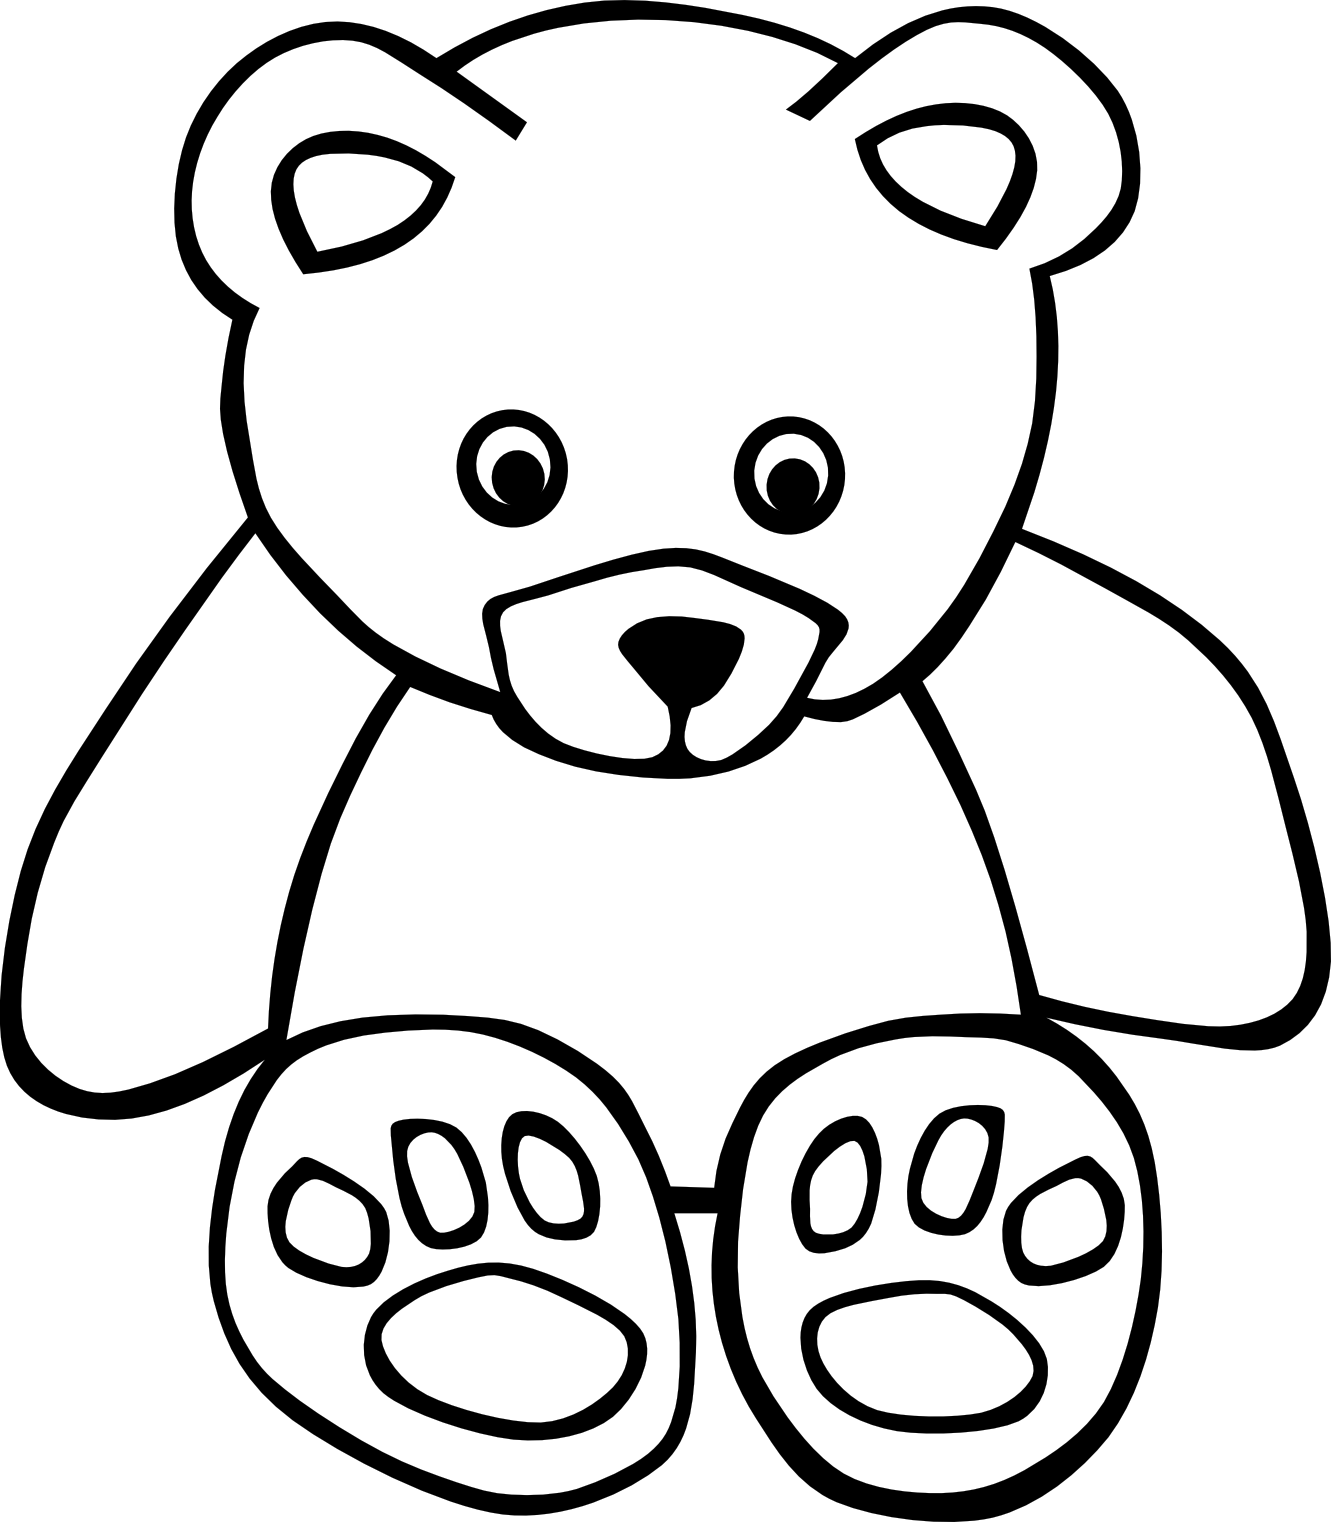 1331x1522 Free Black and White Animal Clipart Image